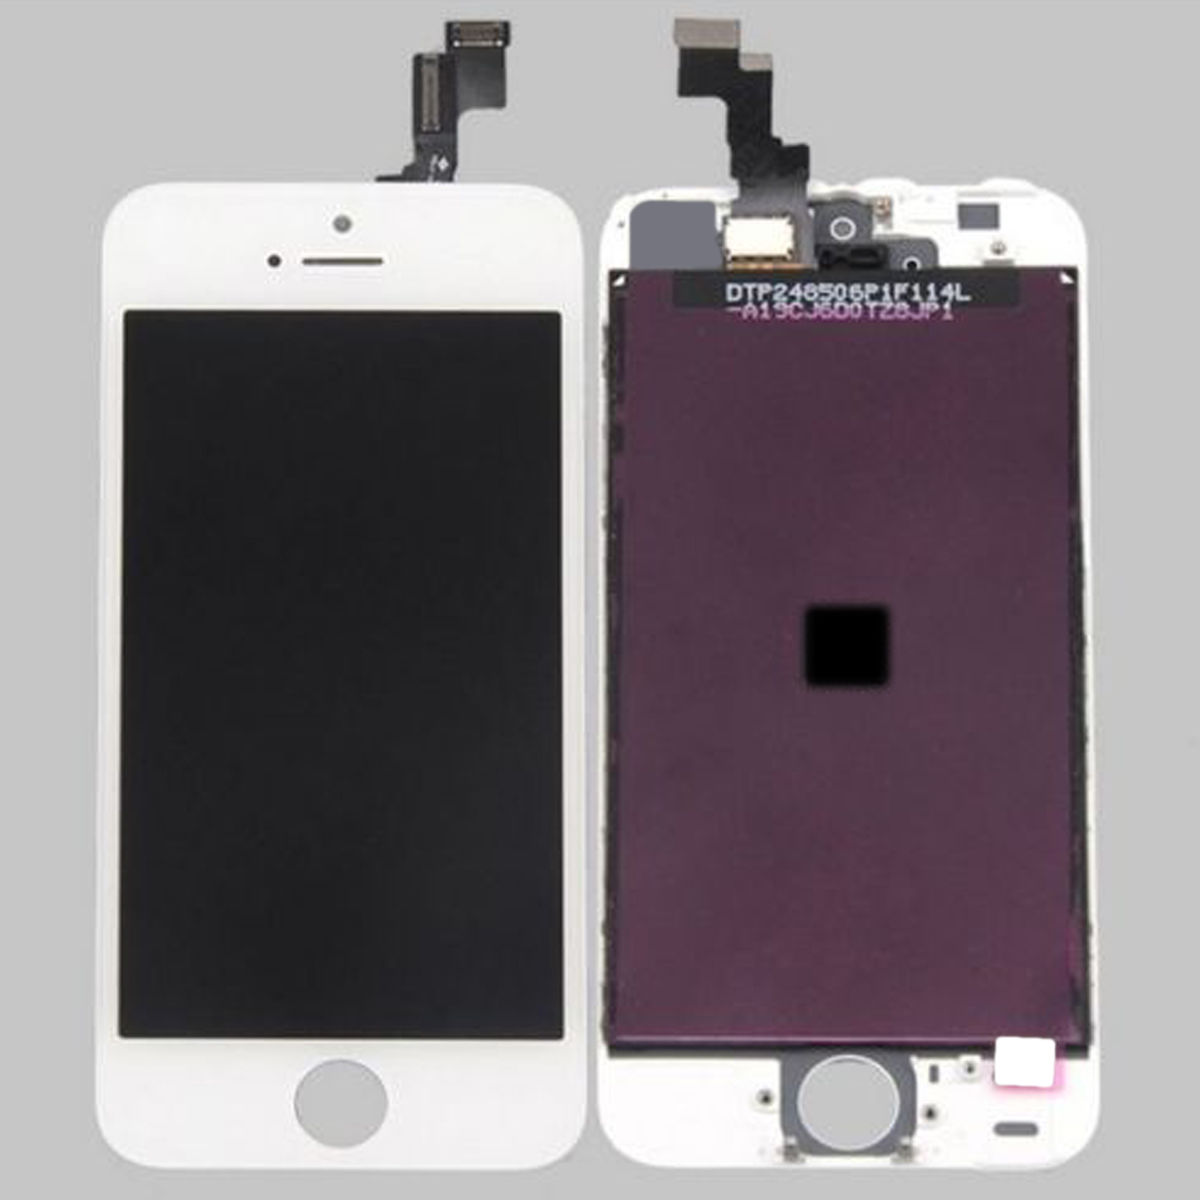 iphone 5 original lcd. Black Bedroom Furniture Sets. Home Design Ideas